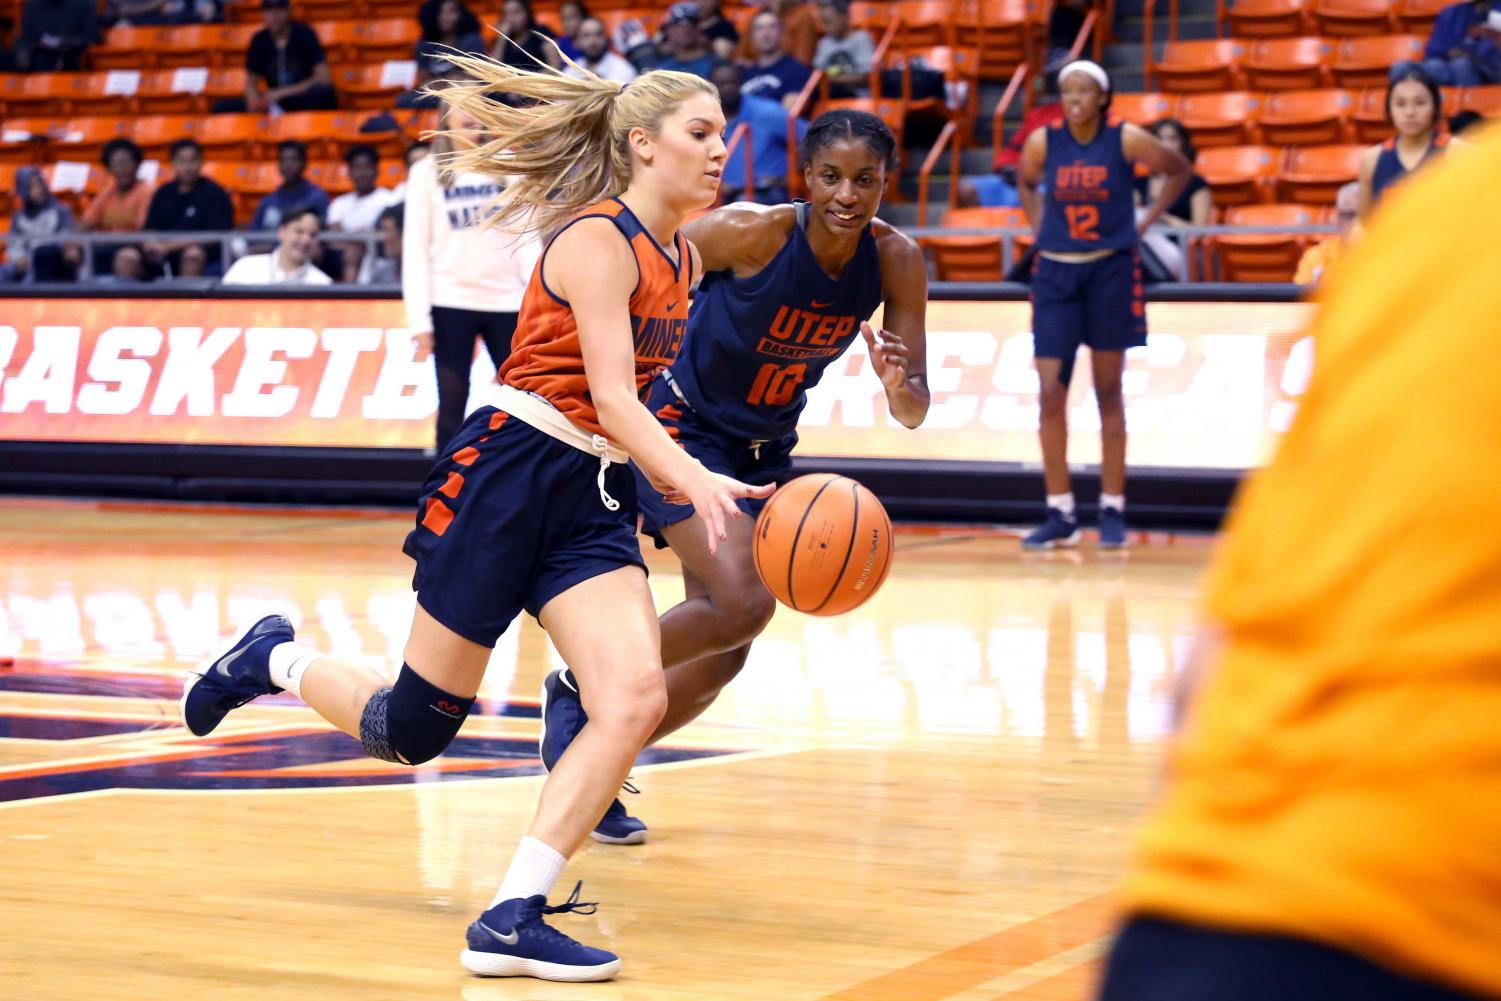 Junior+guard+Katarina+Zec++and+junior+guard%2Fforward+Jade+Rochelle+work+on+one+on+one+drills++during+the+basketball+pre+season+showcase+at+the+Don+Haskins+Center+on+Wednesday%2C+Oct.+10.+